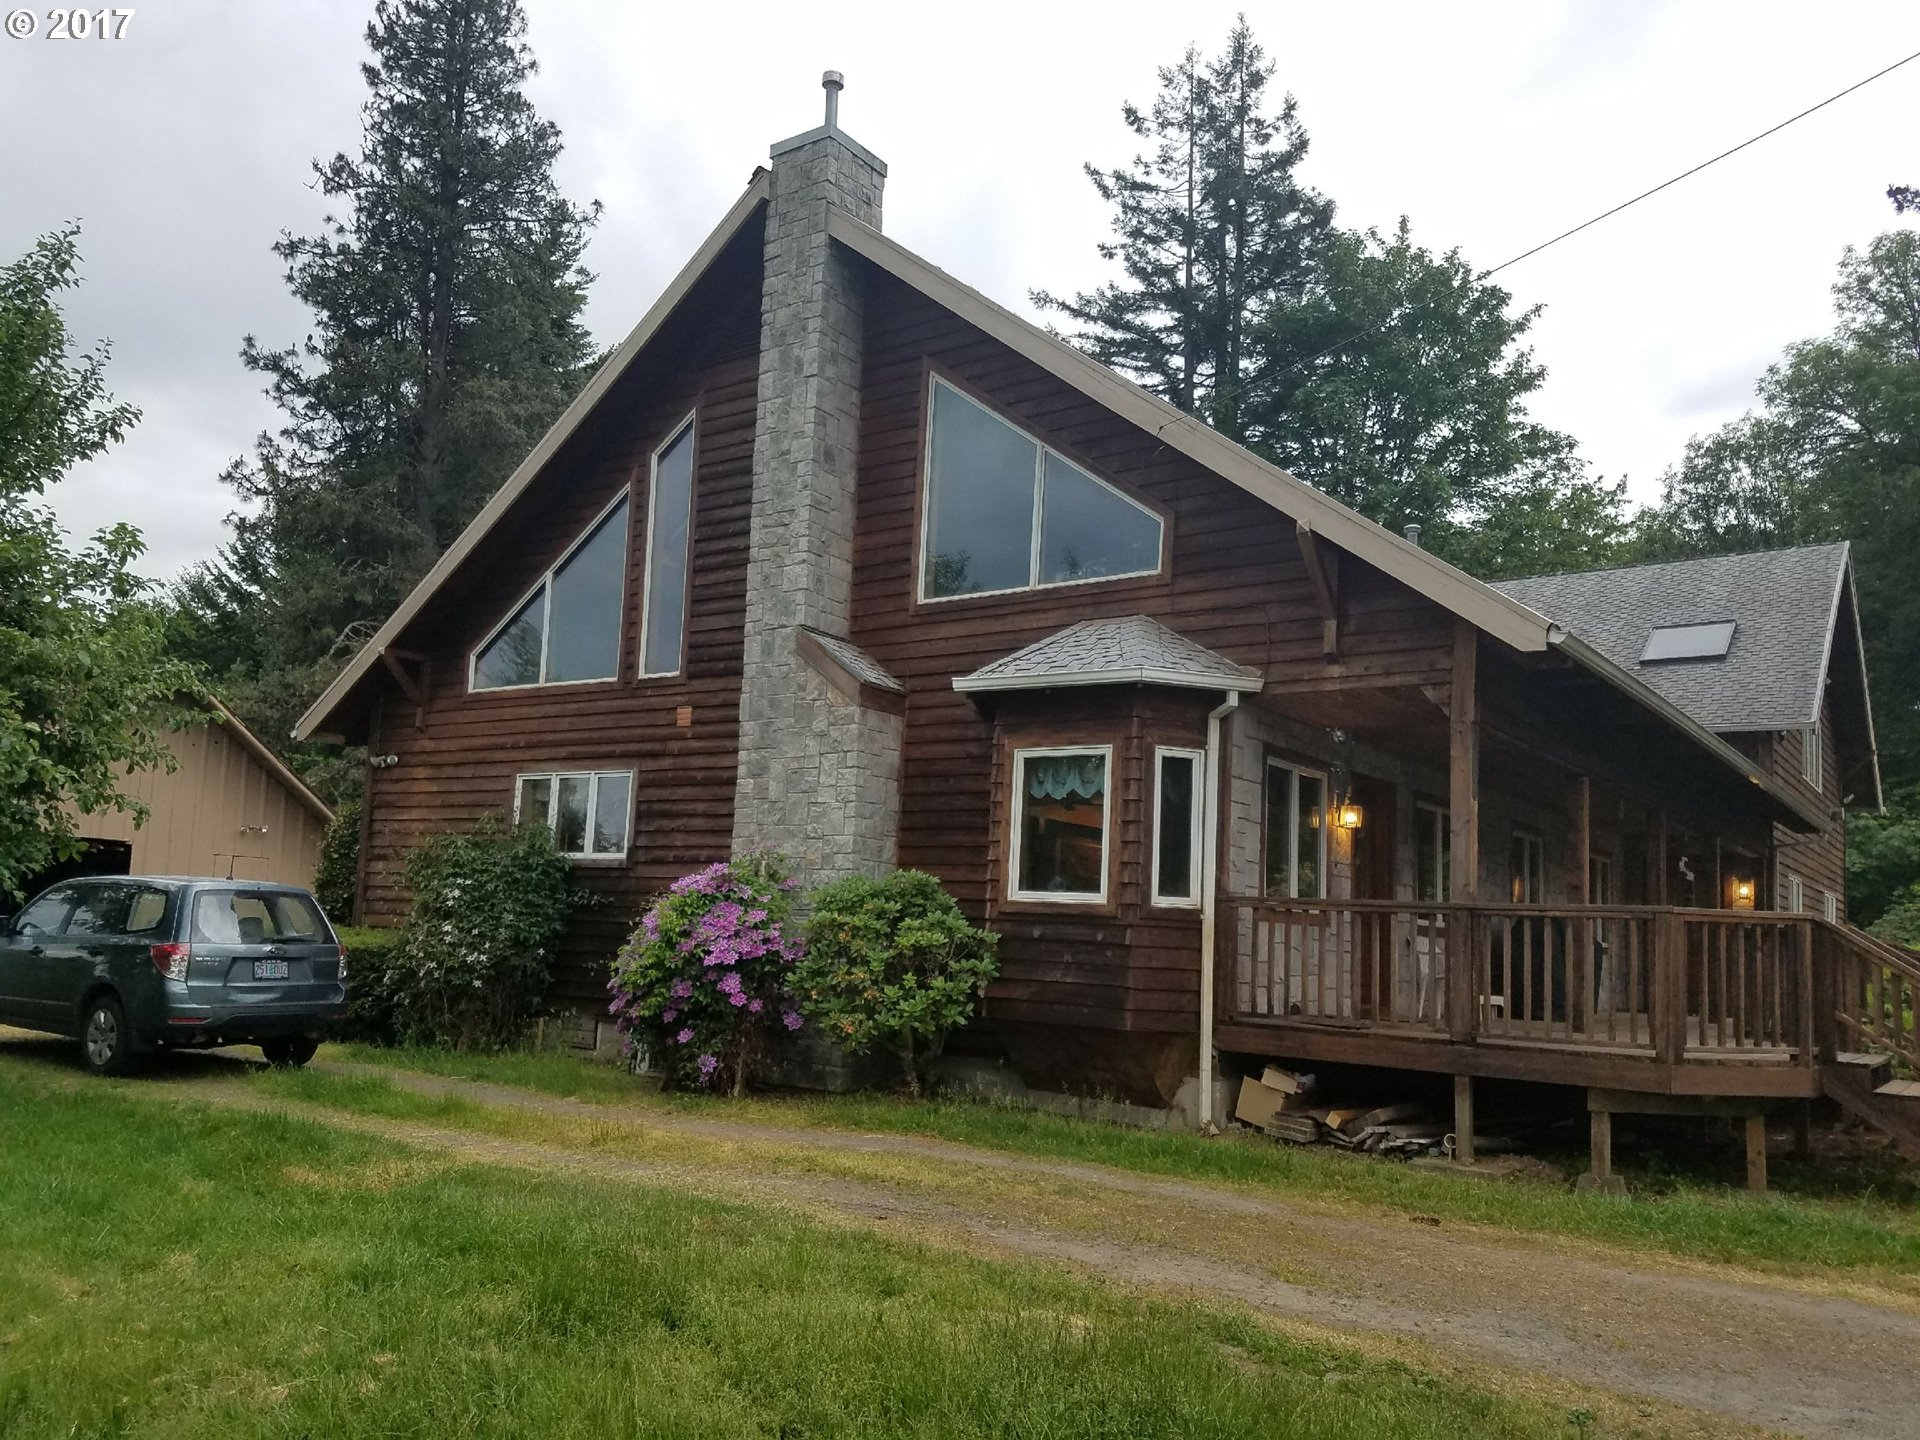 34206 SYKES RD, St. Helens, OR 97051